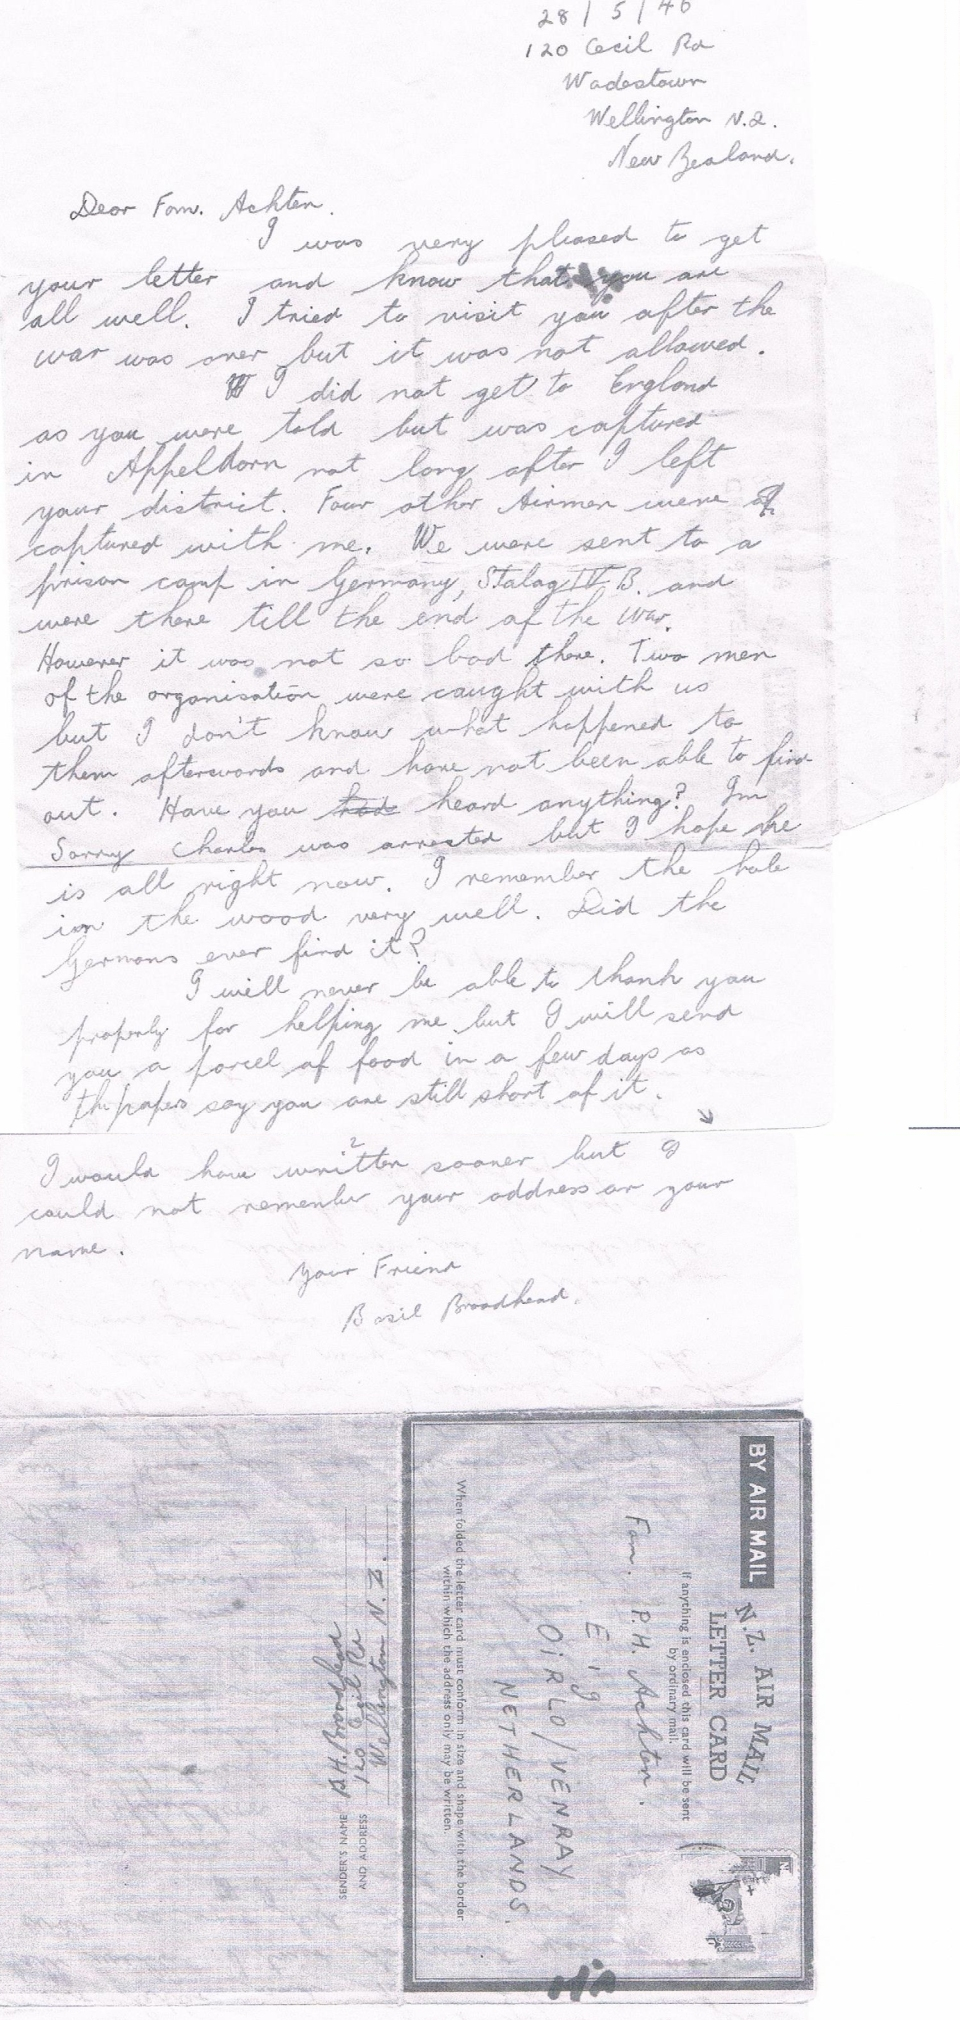 letter from Basil 1946